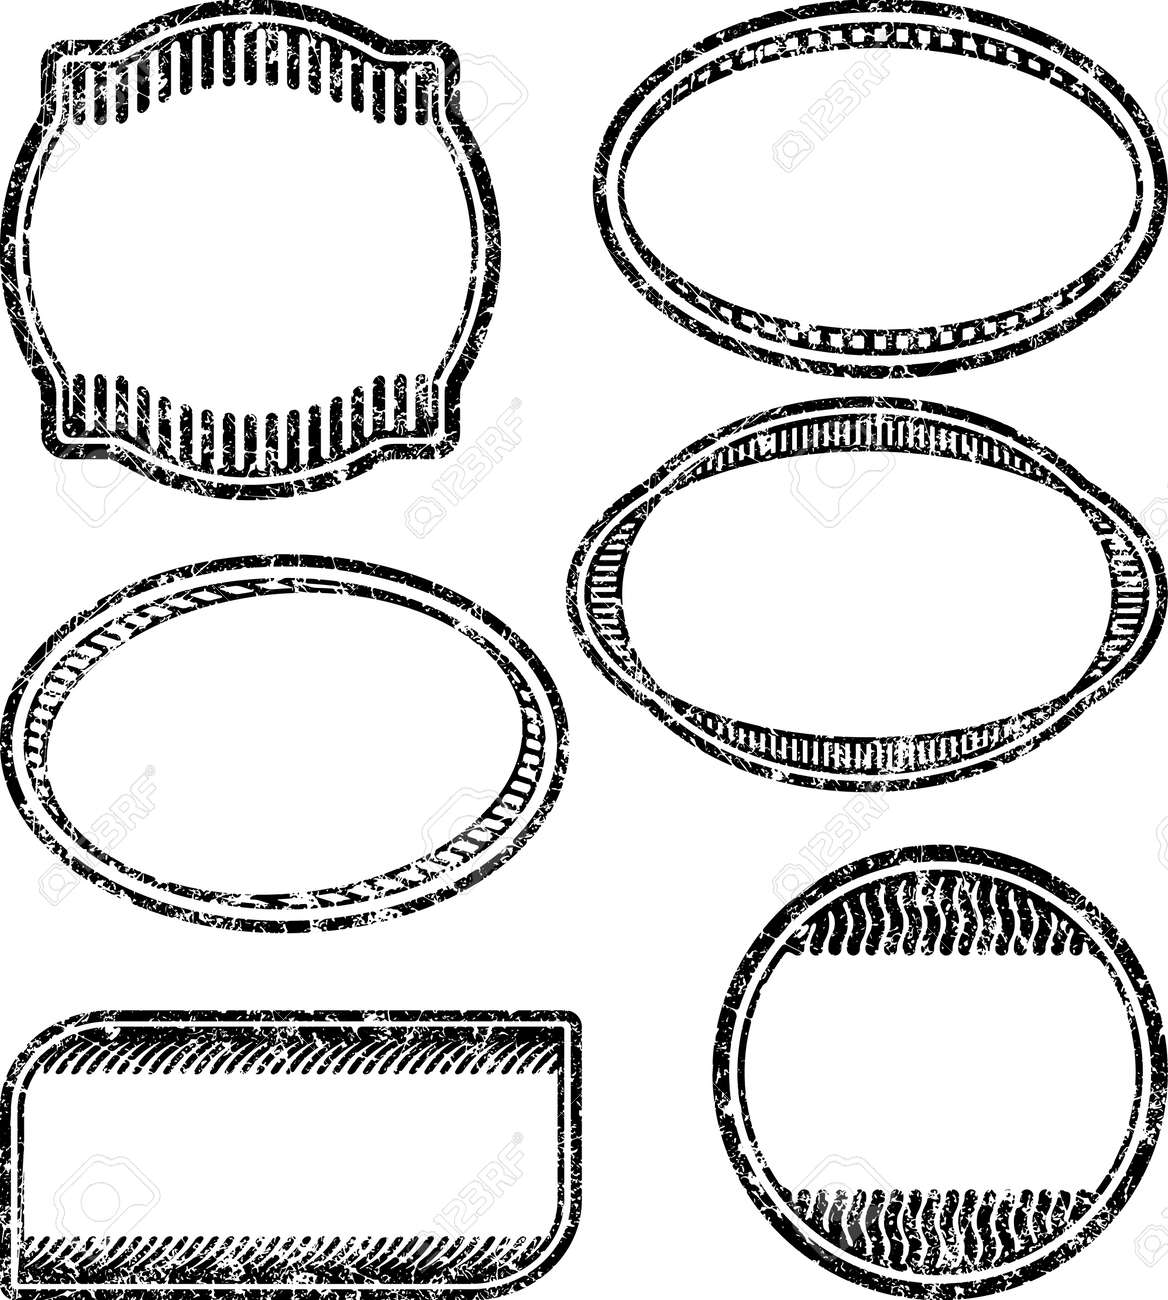 set of 6 grunge rubber stamps templates royalty free cliparts